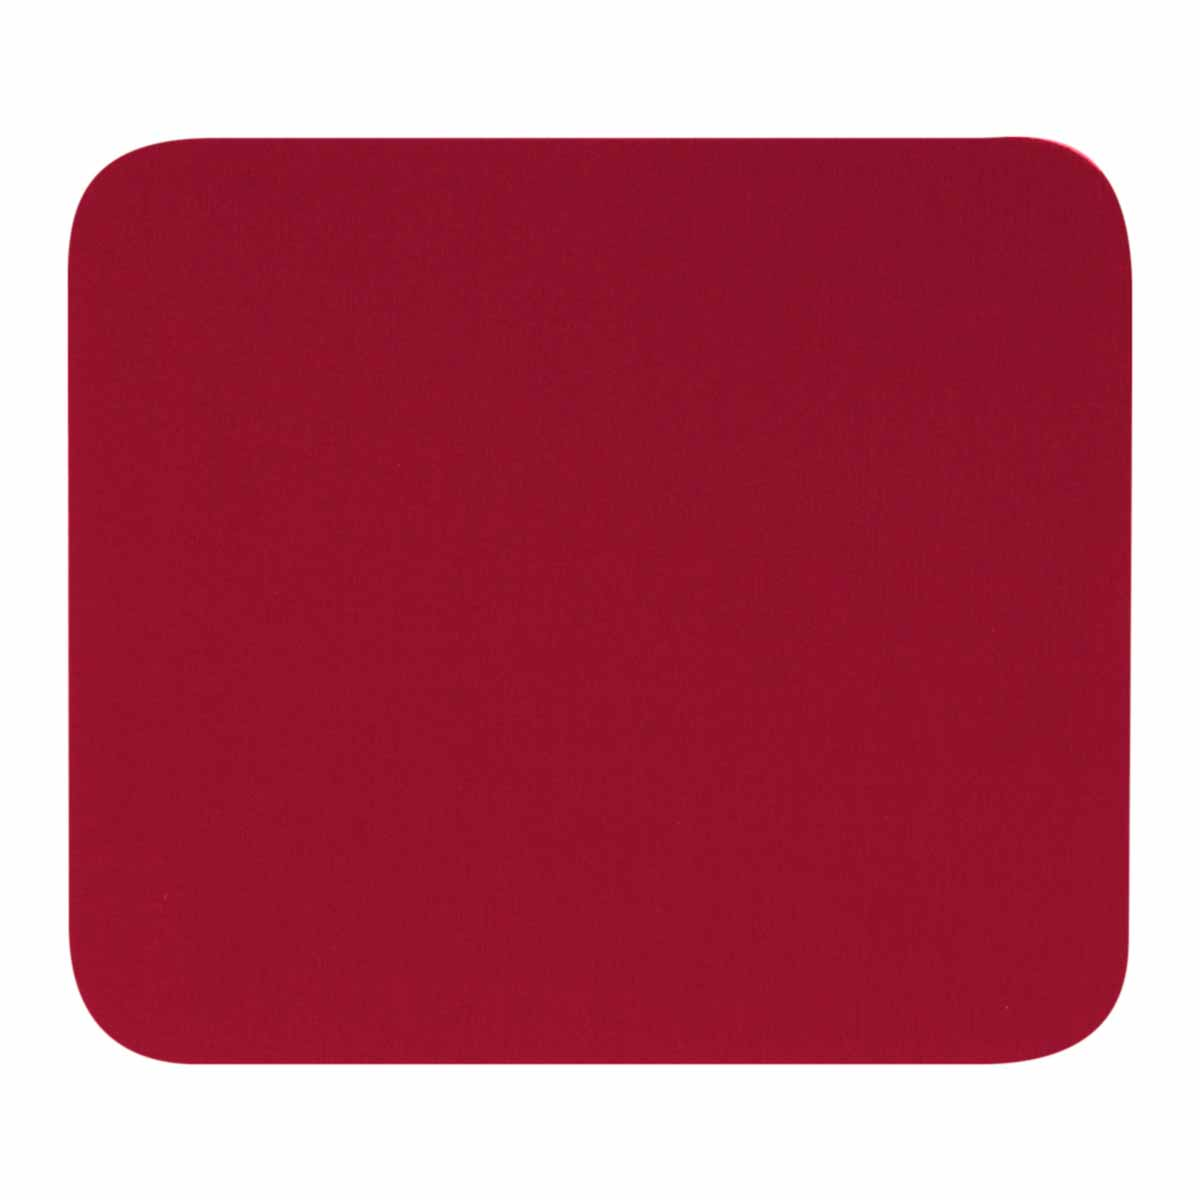 MOUSE PAD RECTANGULAR COLOR ROJO